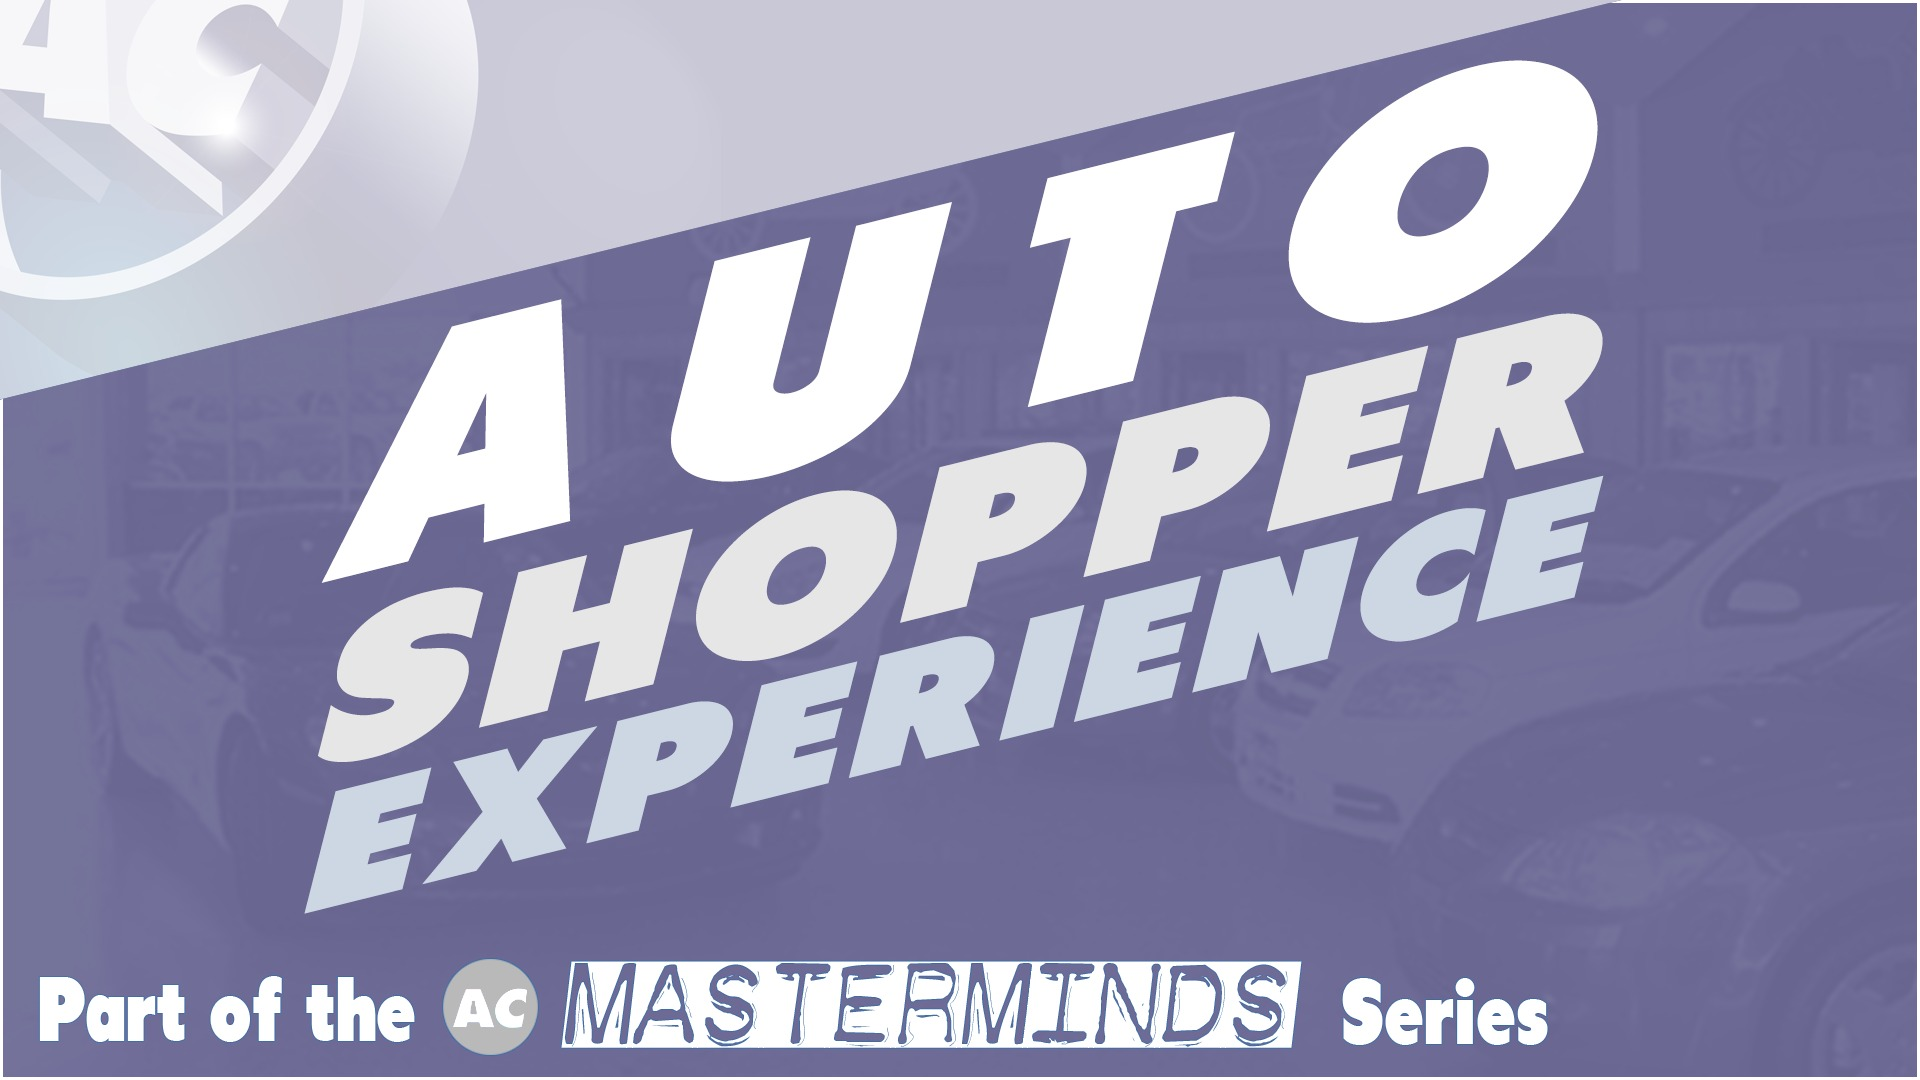 Auto Shopper Experience Mastermind